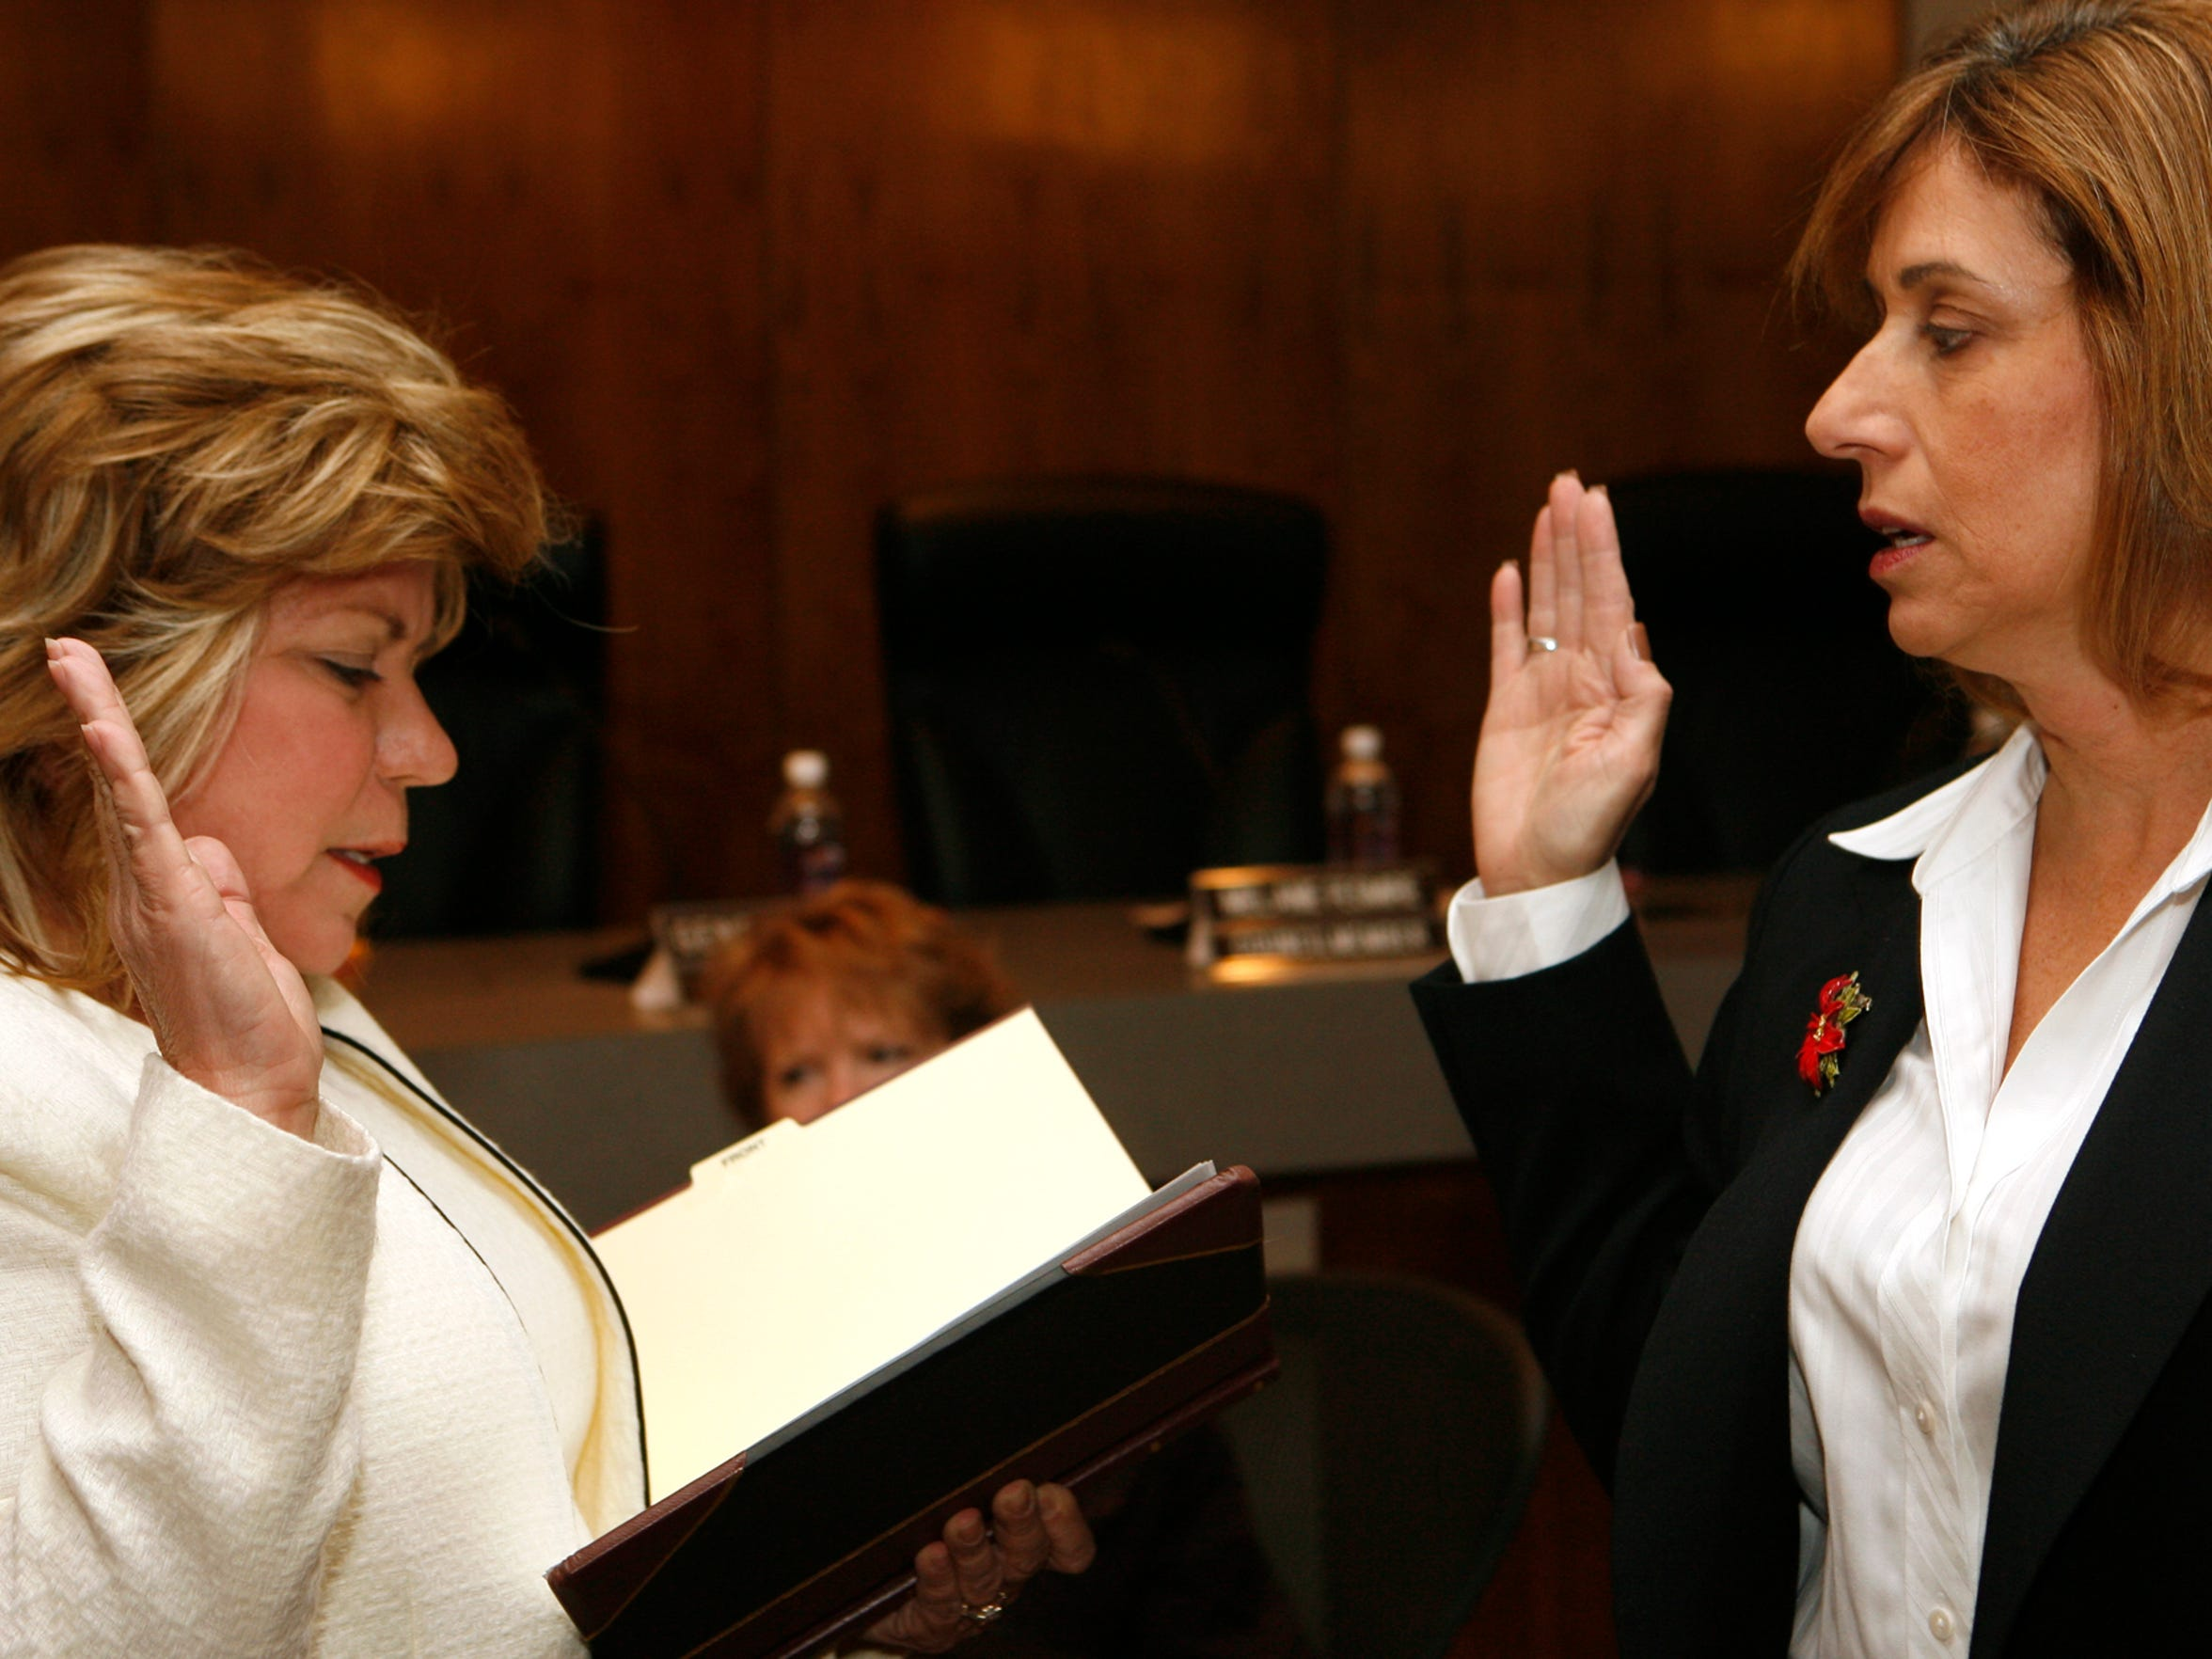 Indio City Clerk Cynthia Hernandez (left) administers the oath of office to newly elected Indio City Council member Elaine Holmes on December 1, 2010 at Indio City Council Chamber.